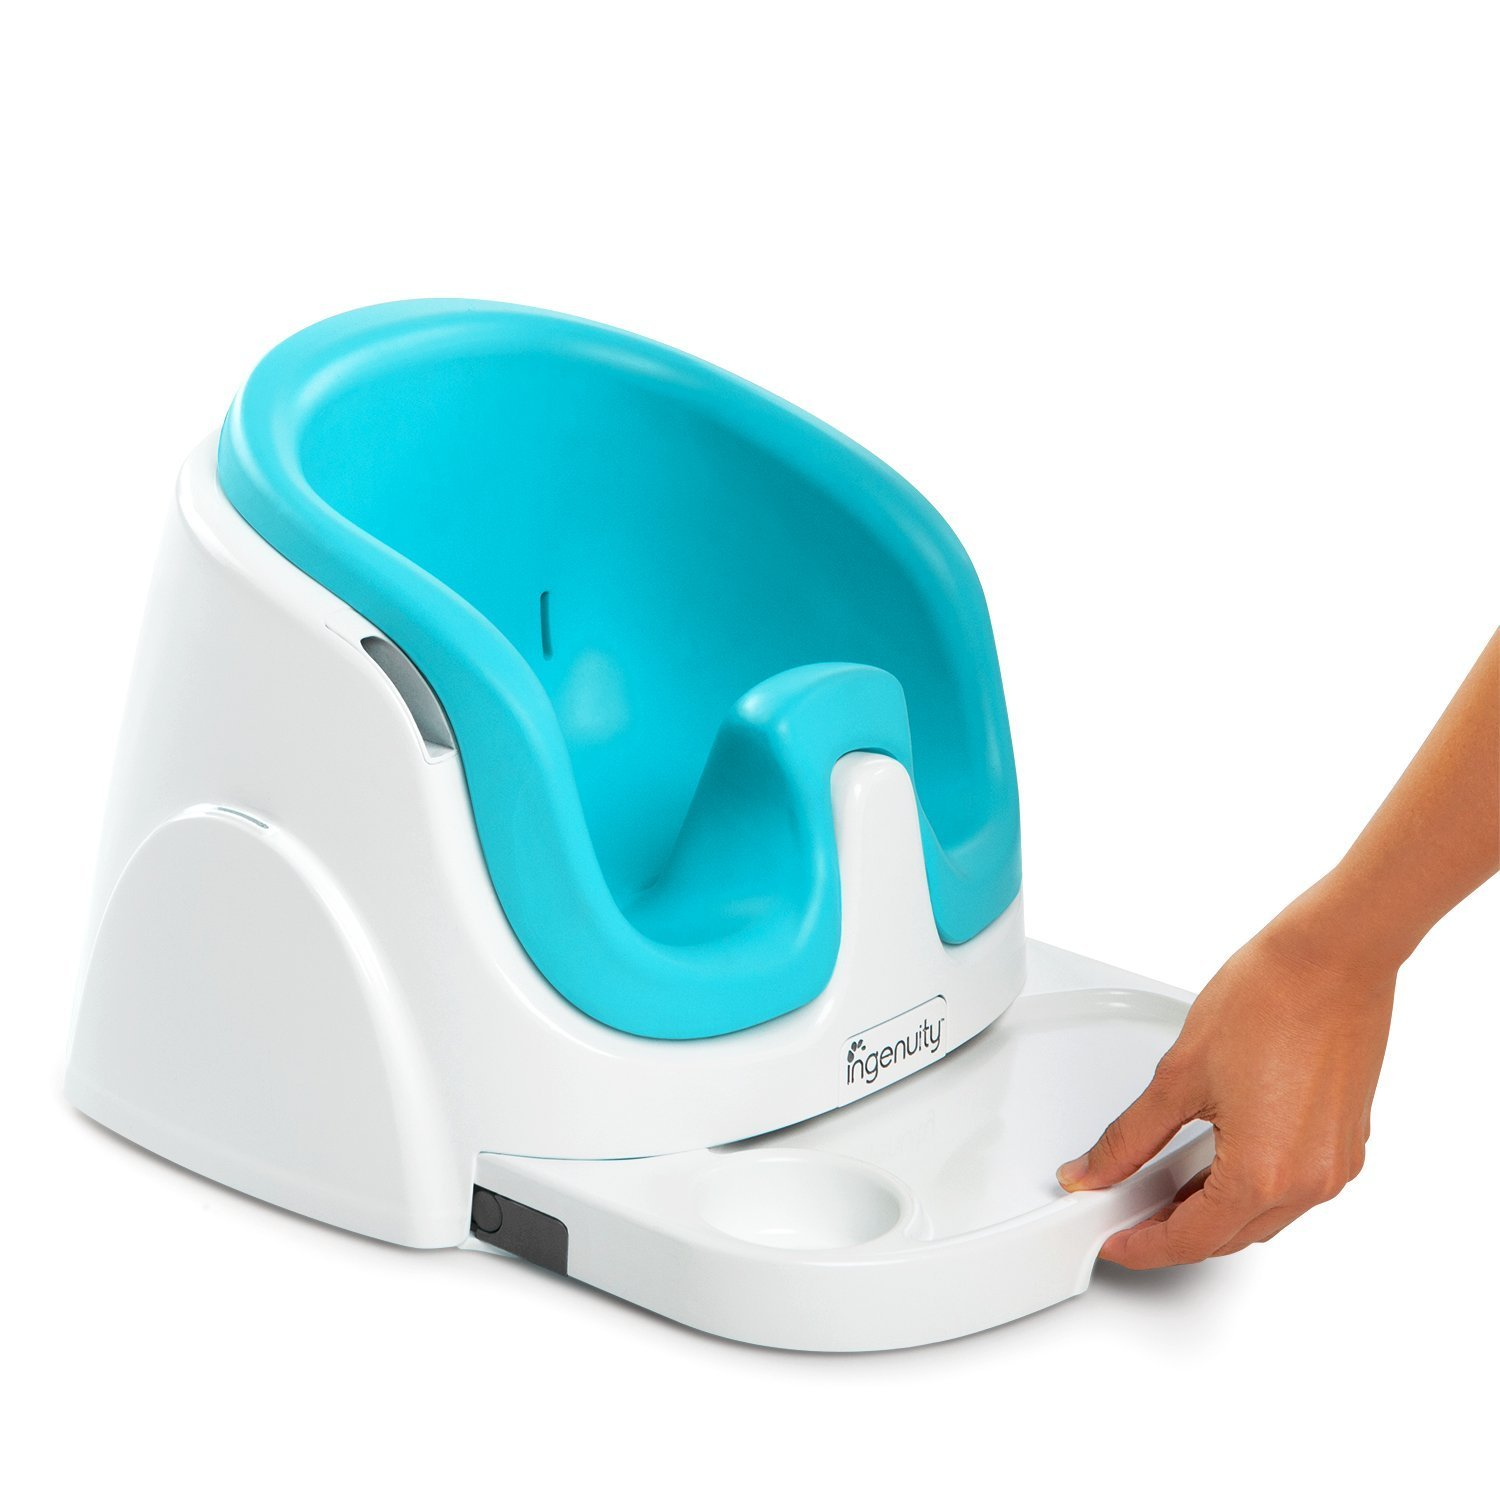 Ingenuity Baby Base 2-in-1 - Teal image